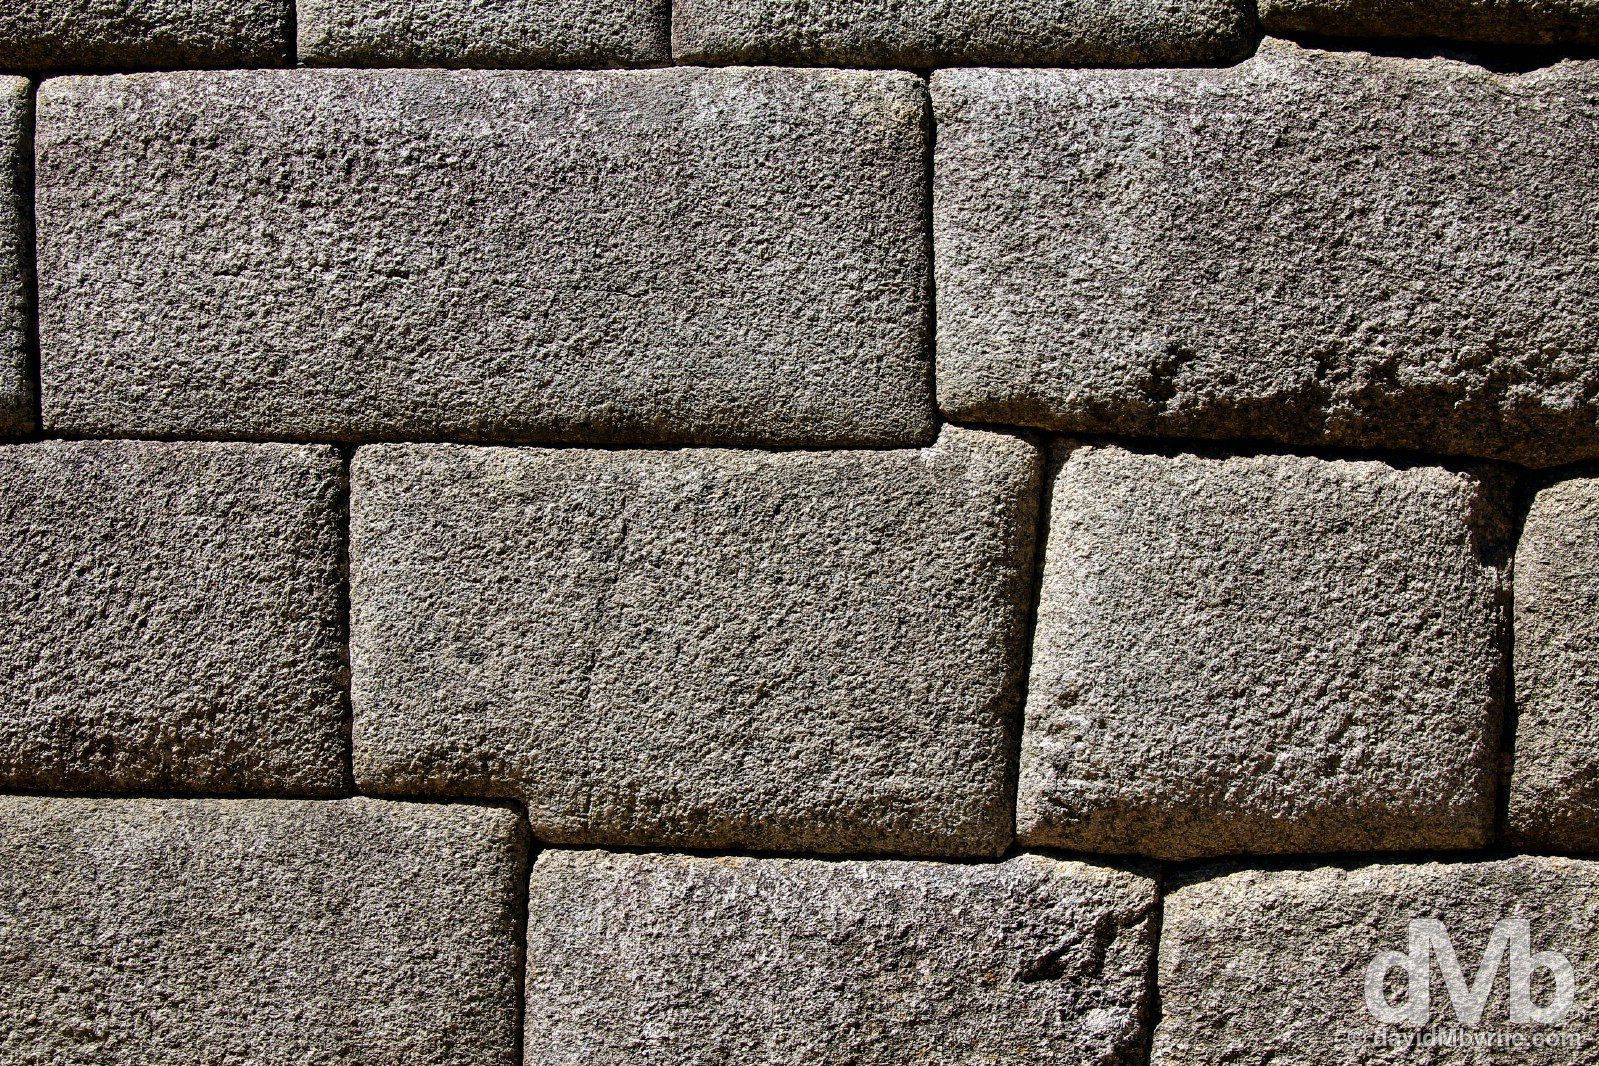 An example of rectangular convex Inca style brickwork of the site's main temple, the Temple of the Sun, a semi-circular, stunted tower-like structure that displays some of Machu Picchu's finest granite stonework. Machu Picchu, Peru. August 15, 2015.